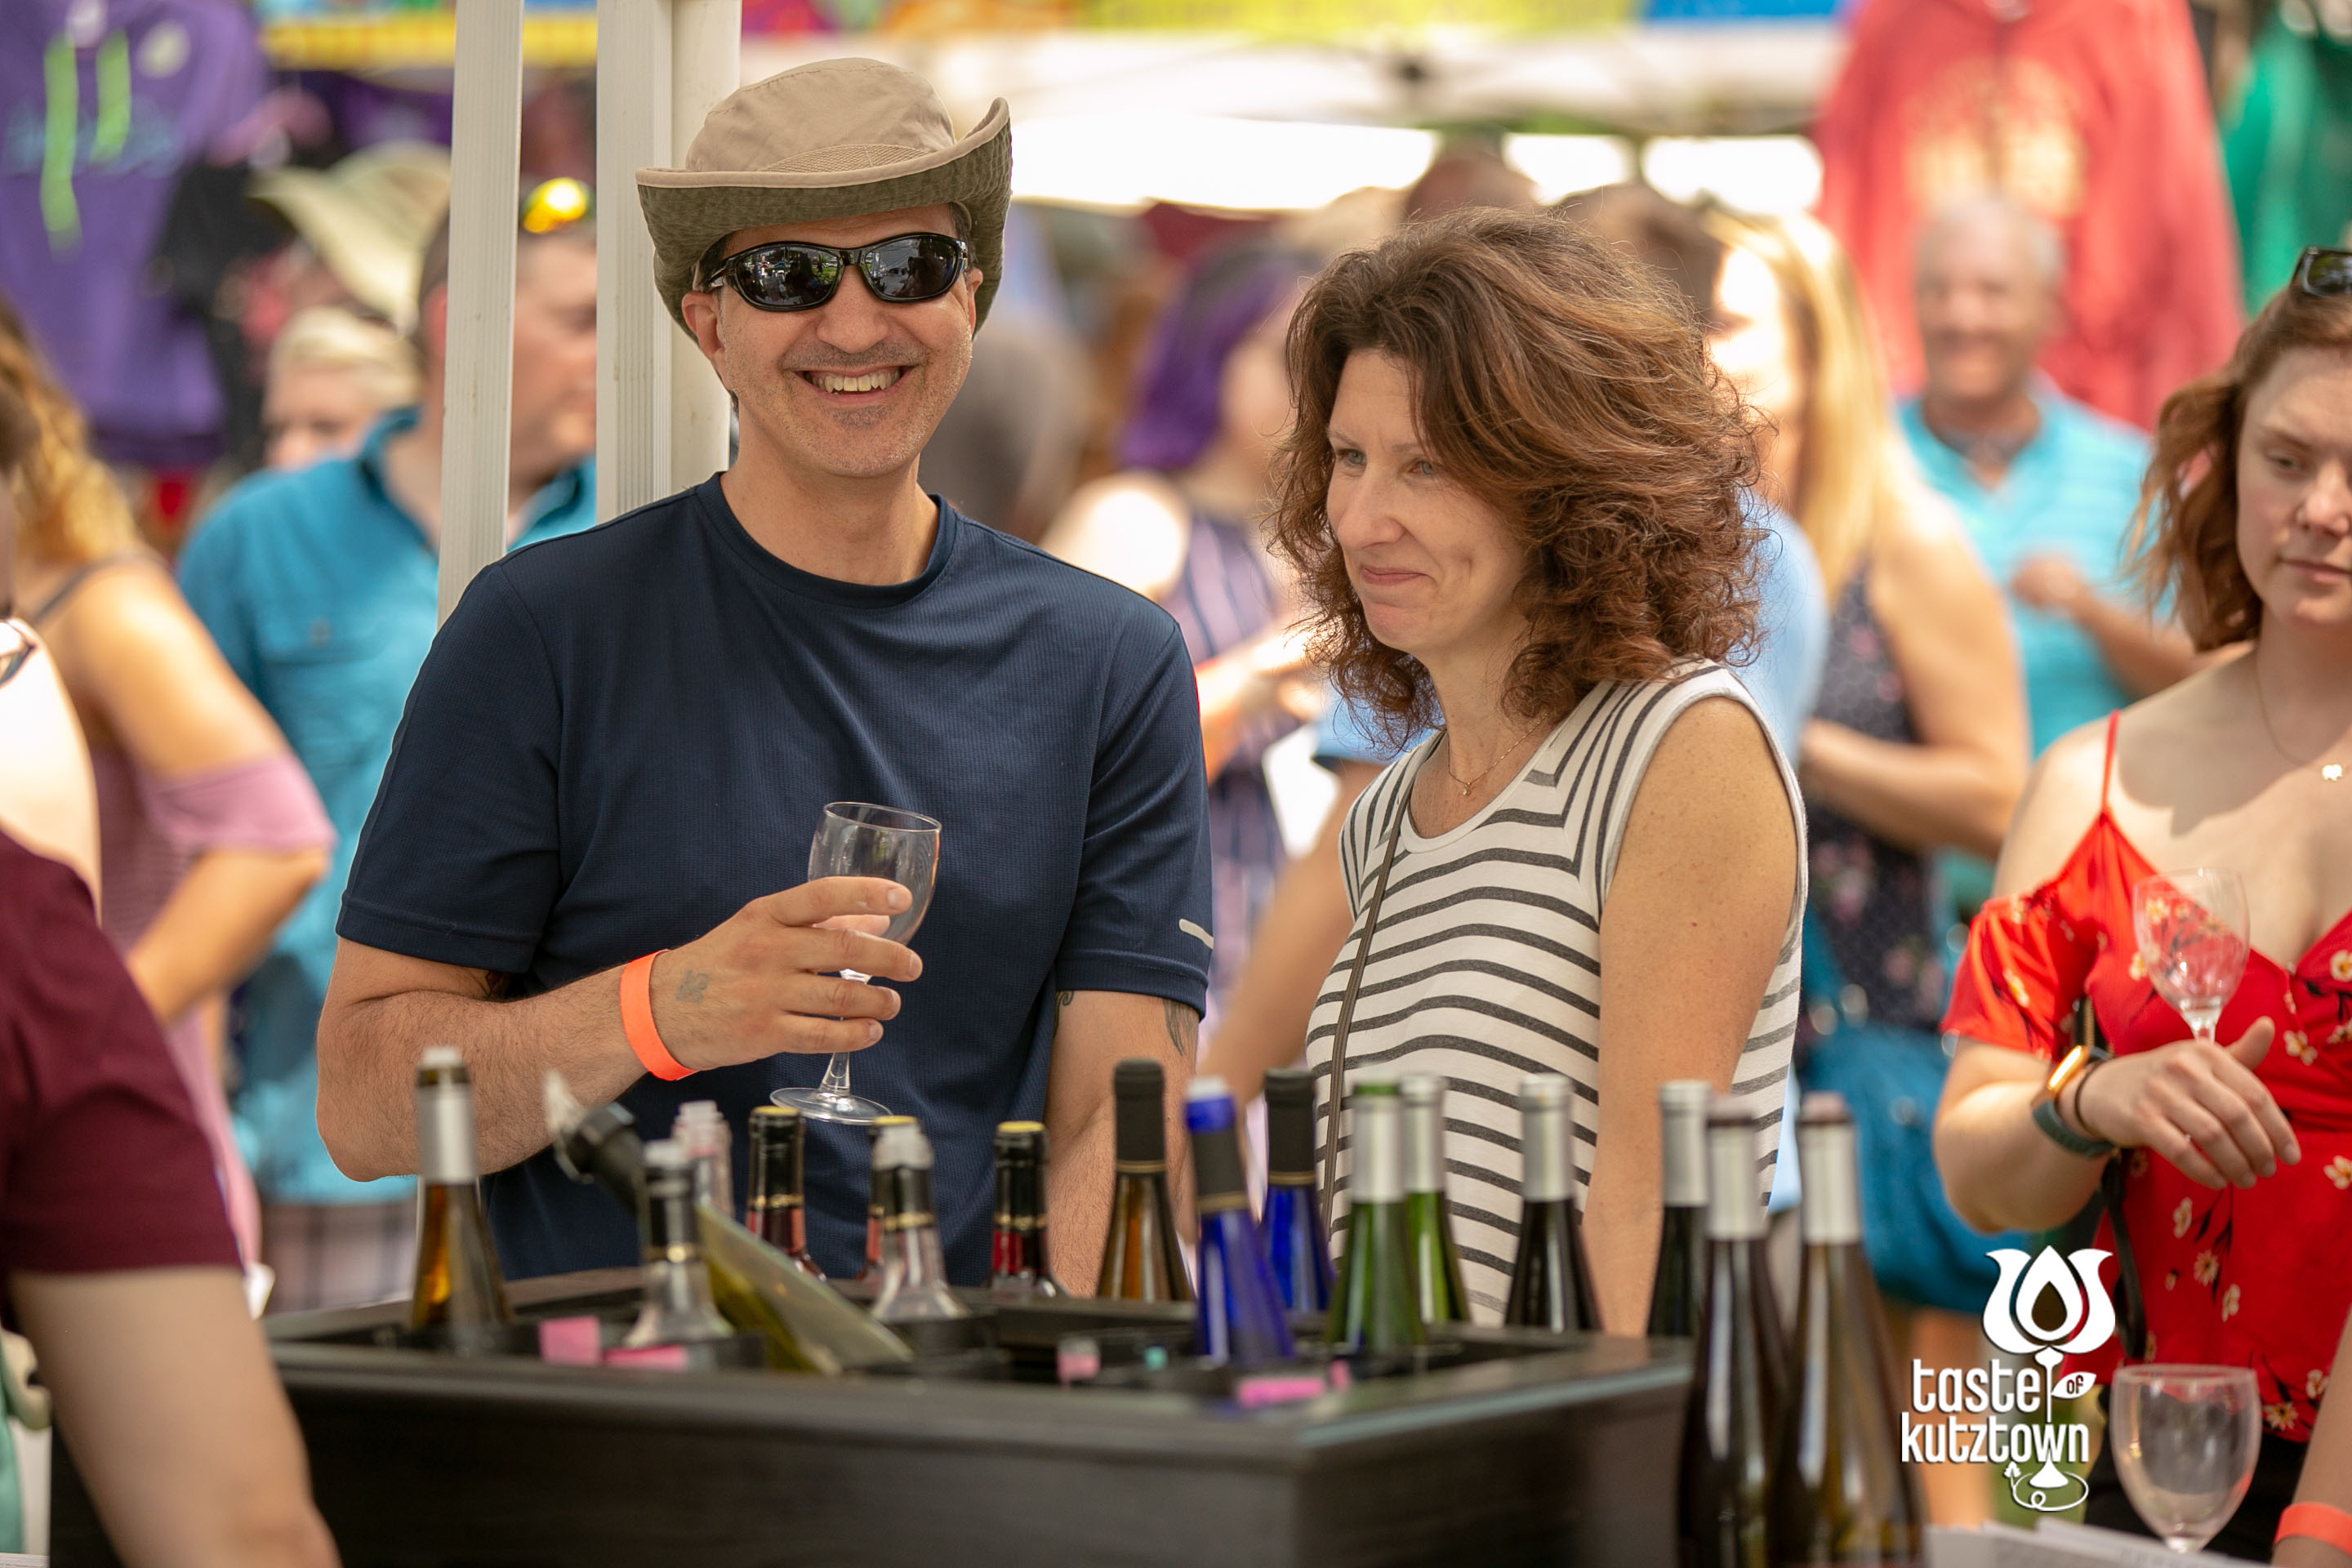 Taste of Kutztown Wine & Beer Festival, Couple wine tasting